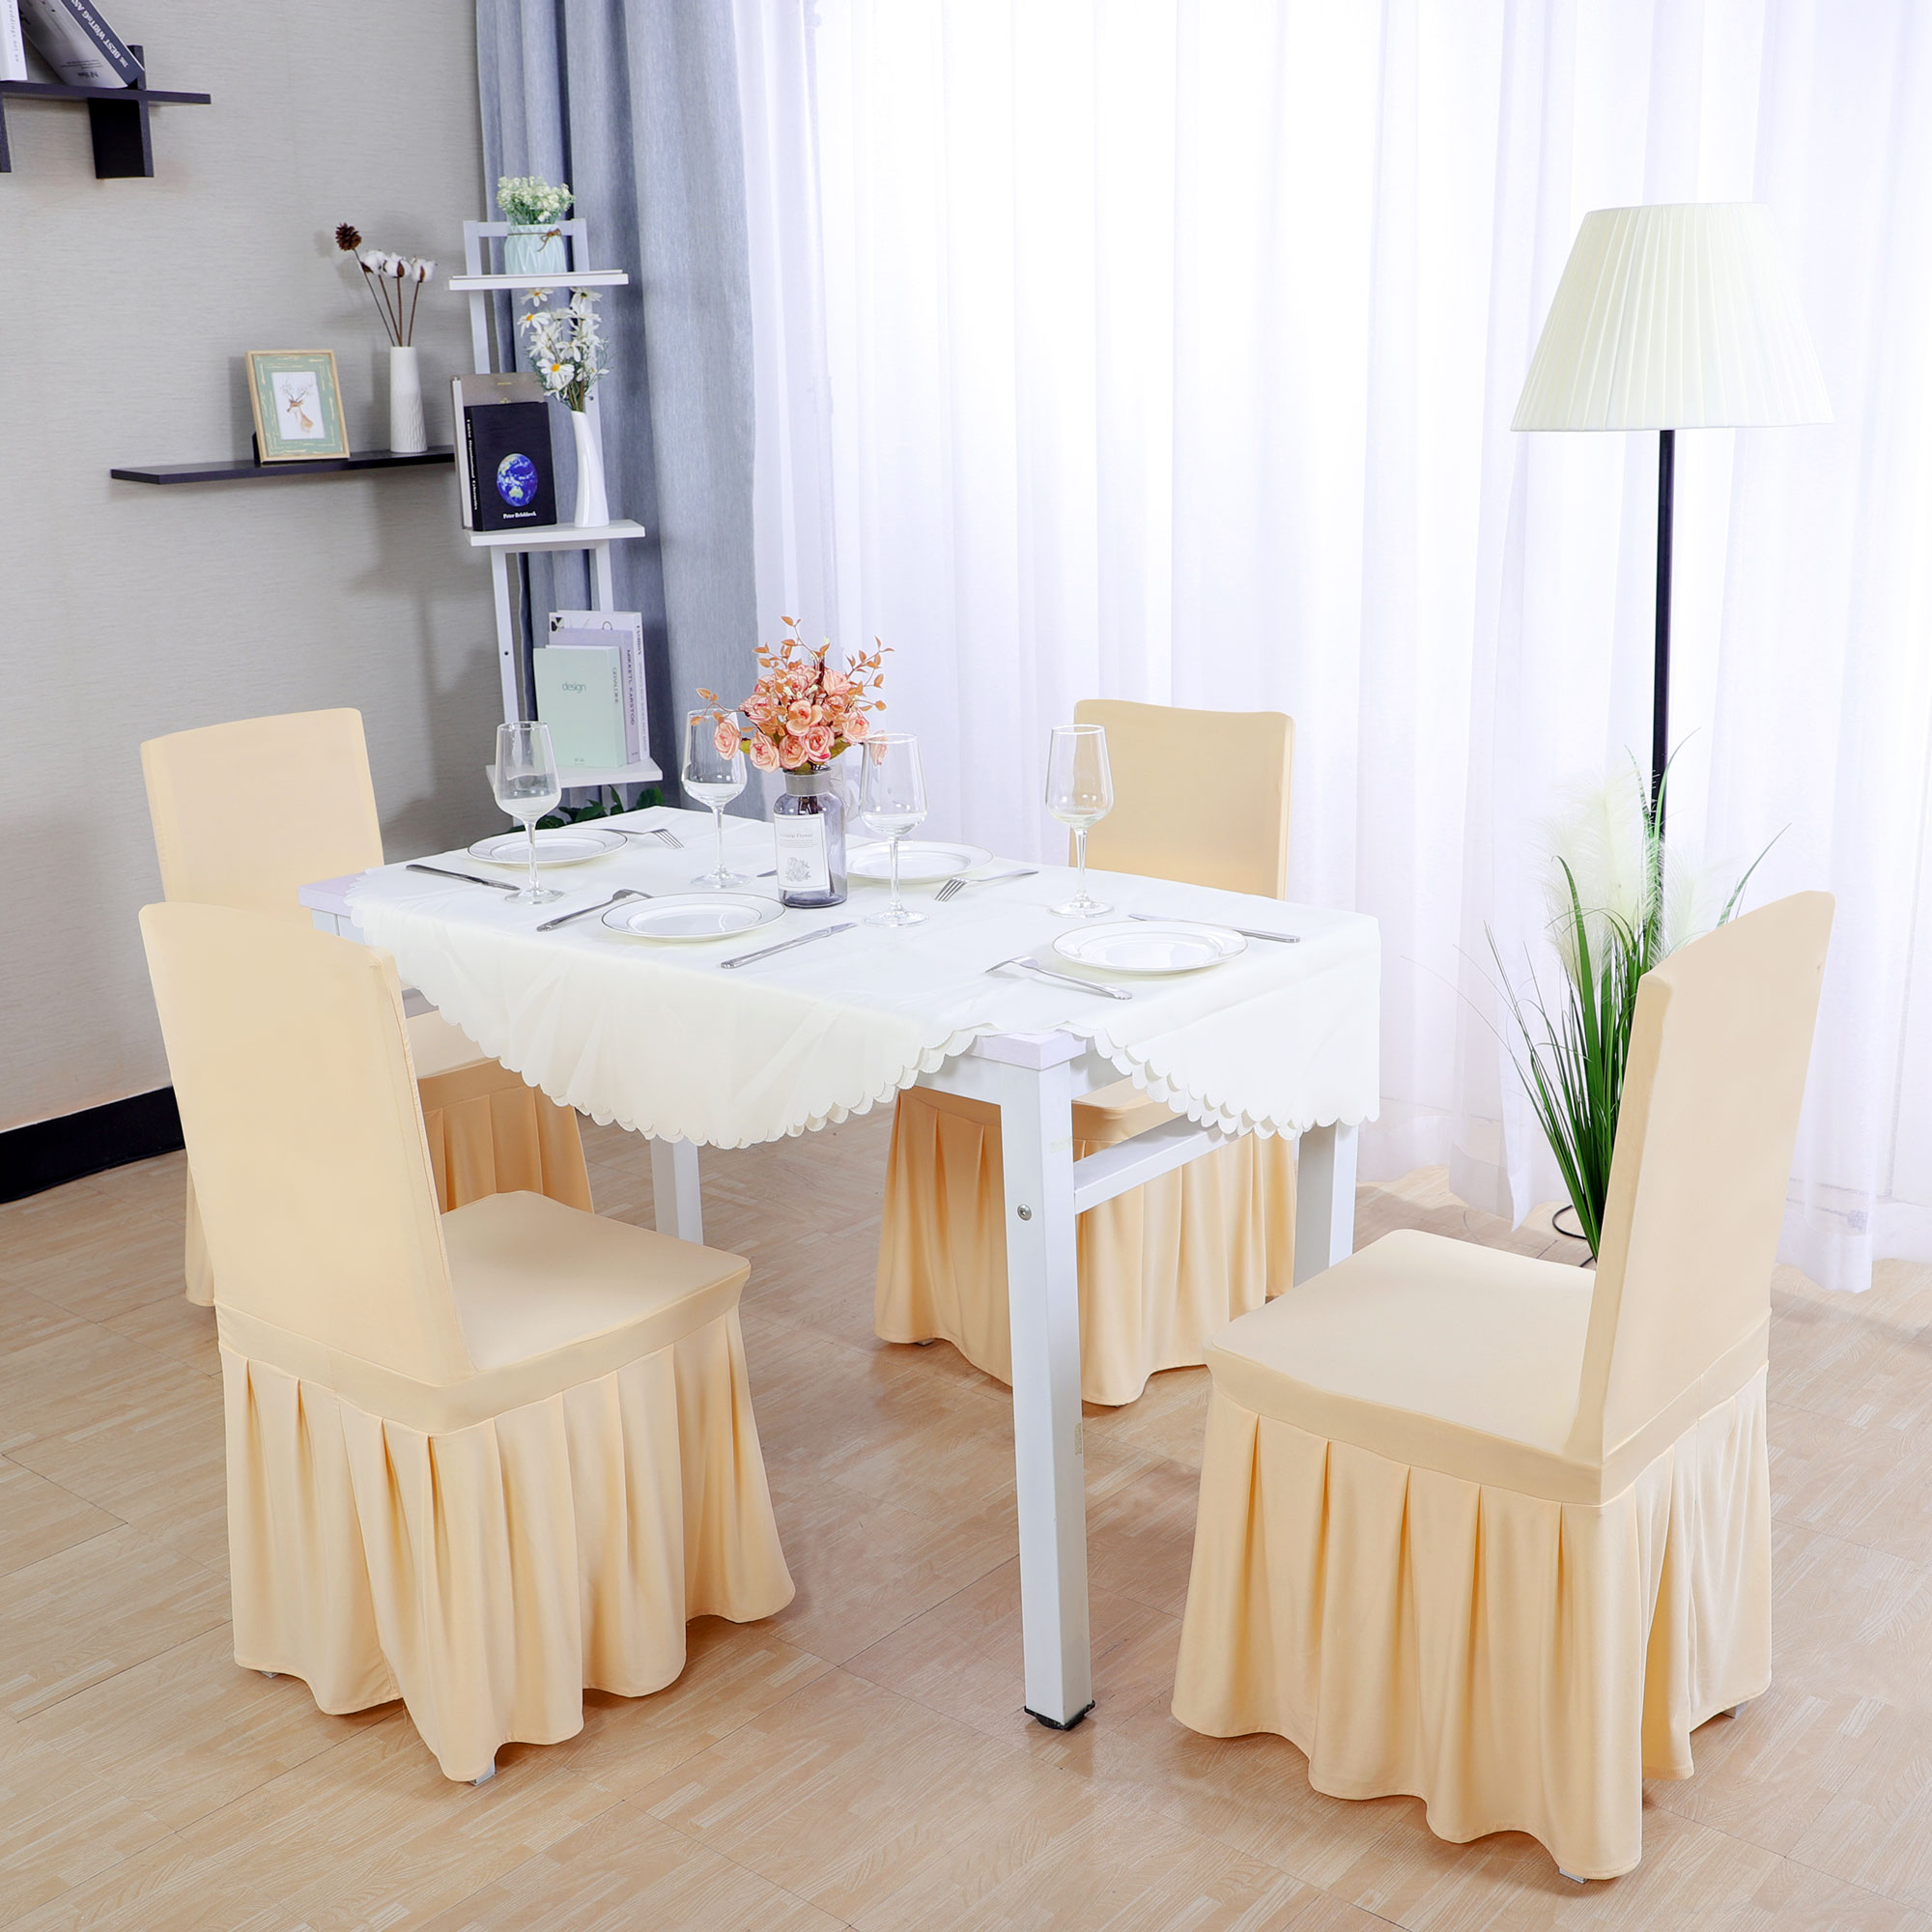 affordable chair covers calgary girls desk chairs dining walmart com product image spandex pleated round slipcovers champagne color 1pc